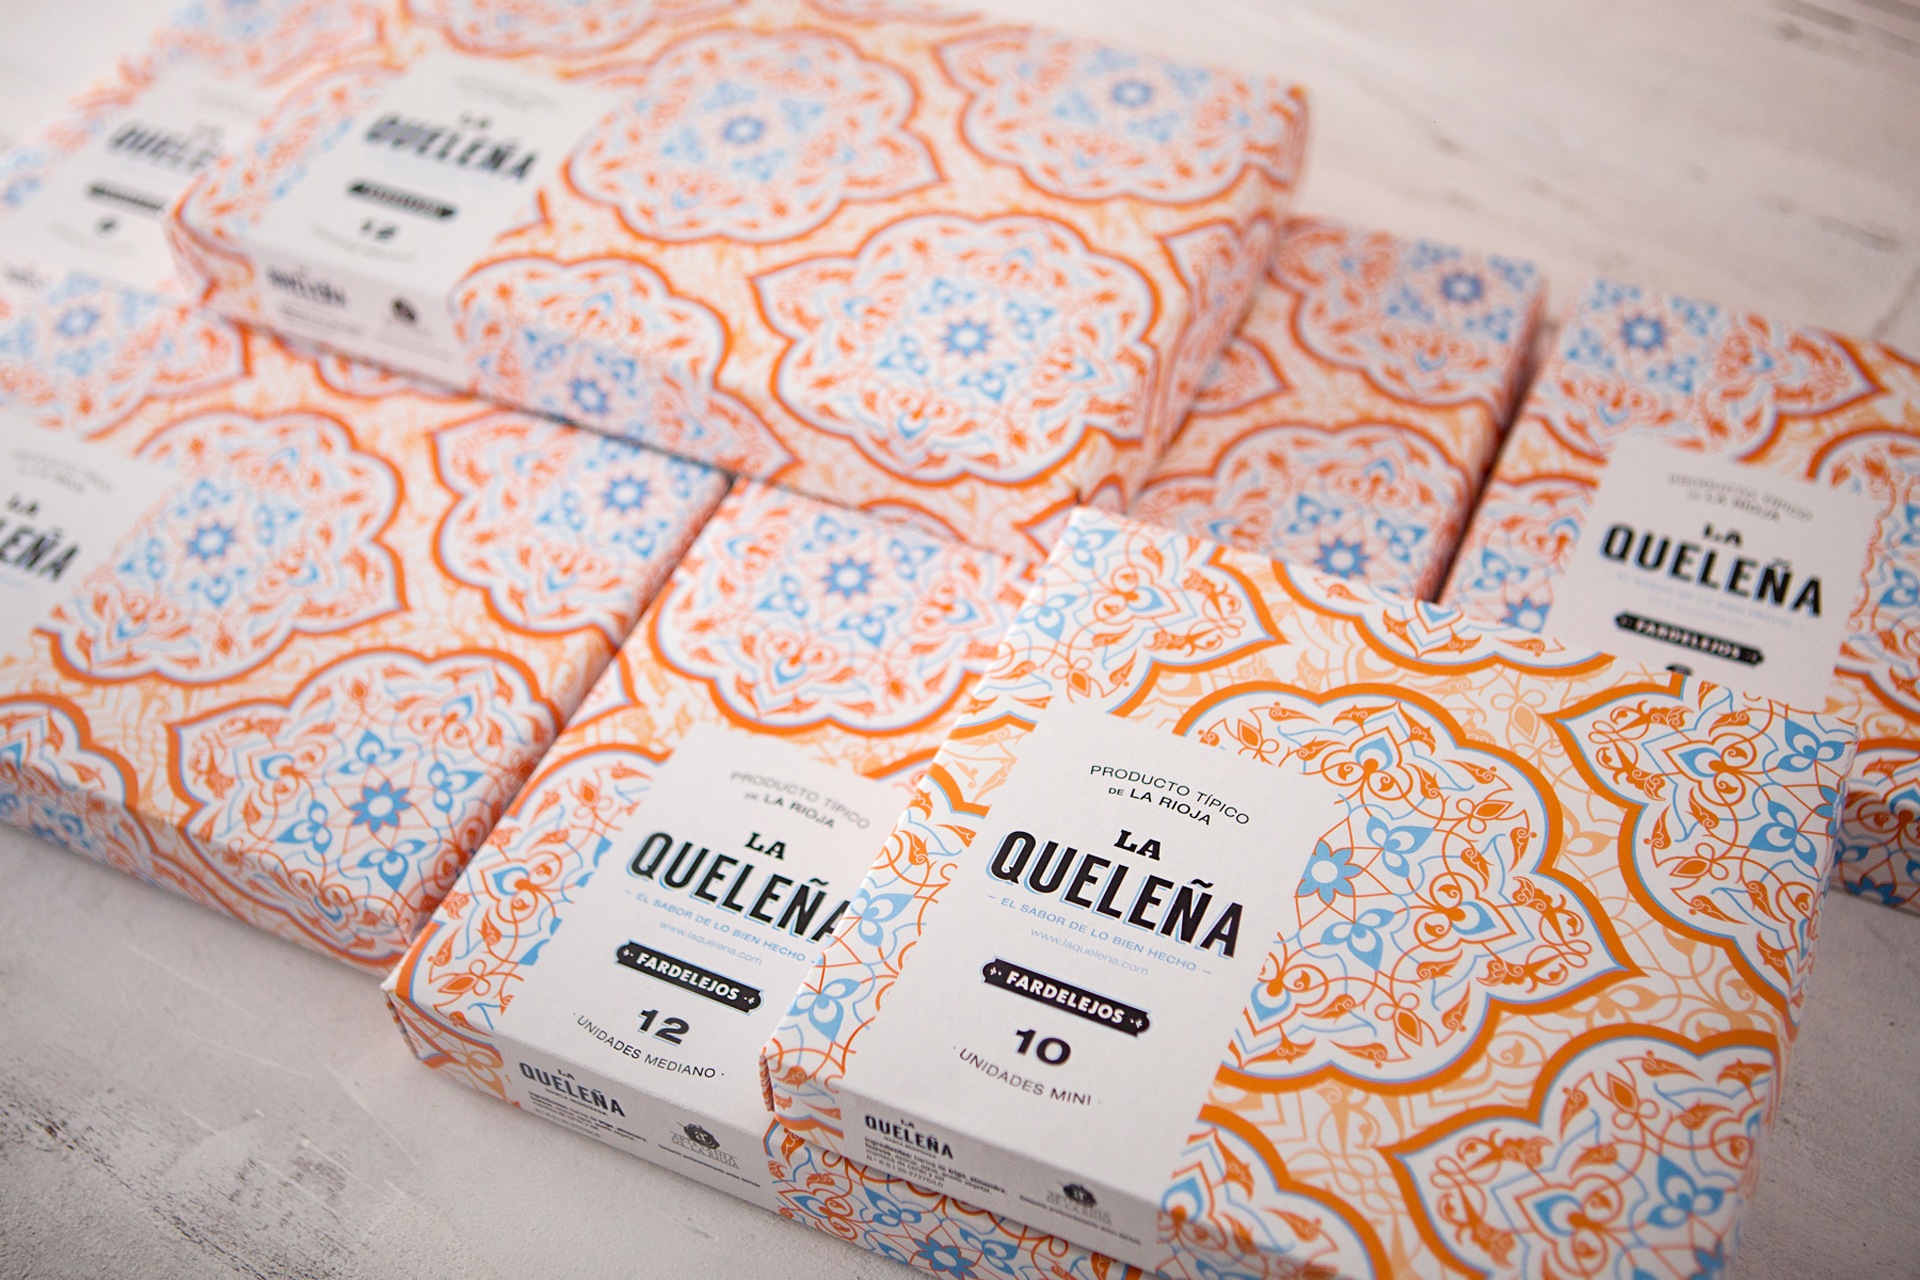 La Queleña Packaging formatos fardalejos